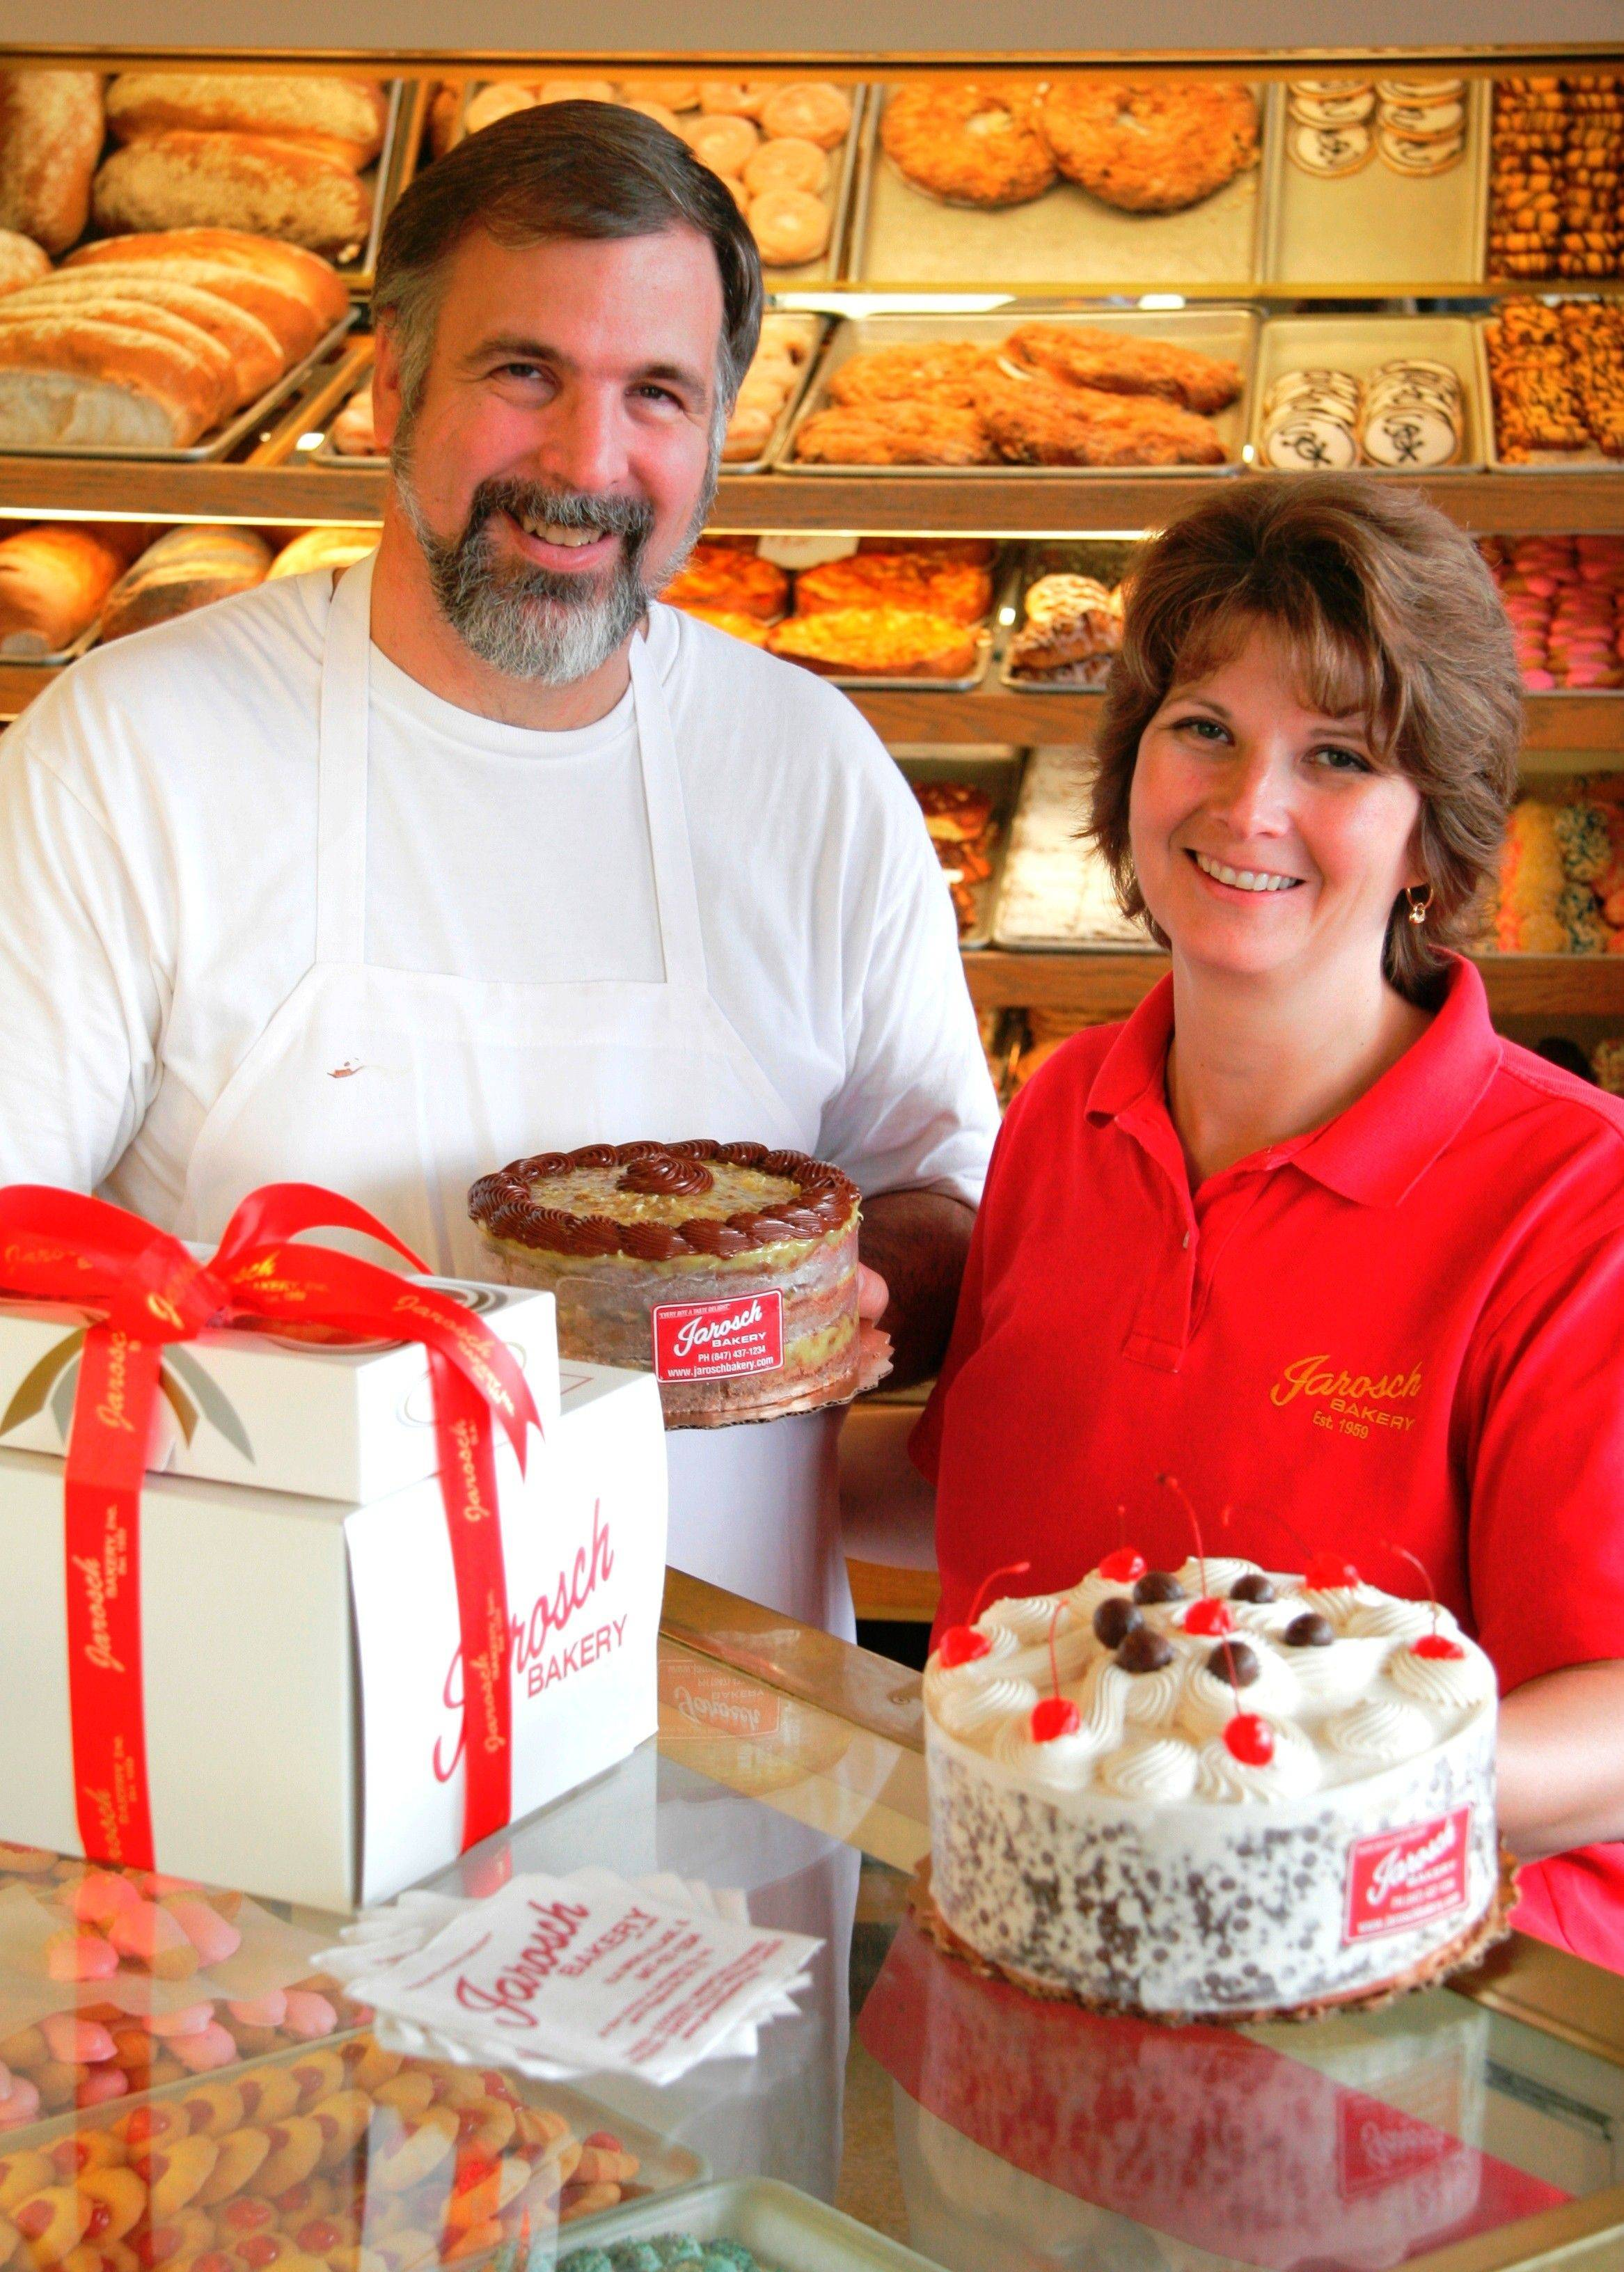 Ken and wife Kathy Jarosch, owners of Jarosch Bakery in Elk Grove Village.